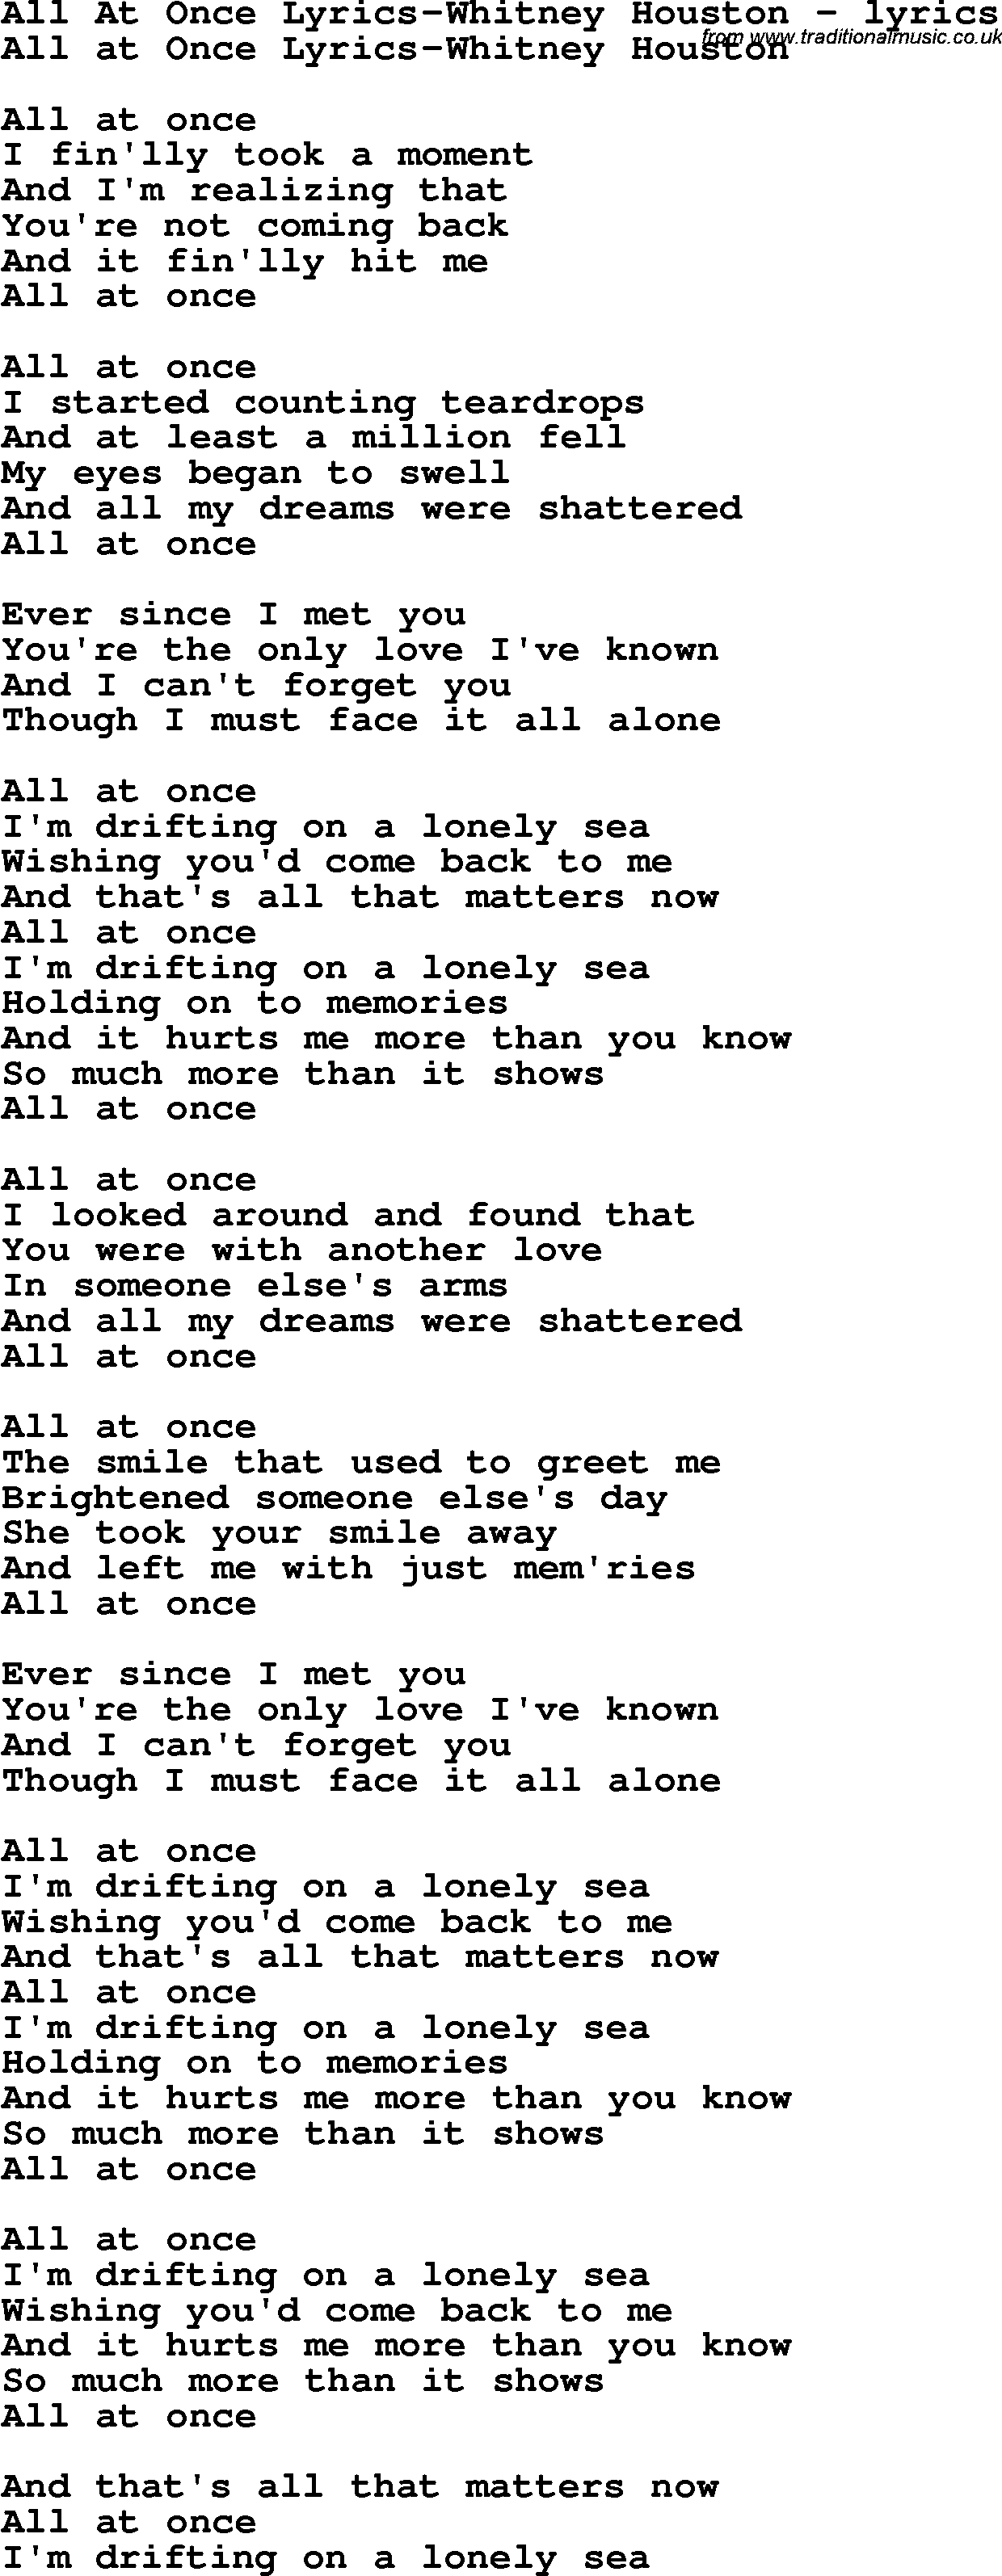 WHITNEY HOUSTON - ALL AT ONCE (lyrics) - YouTube